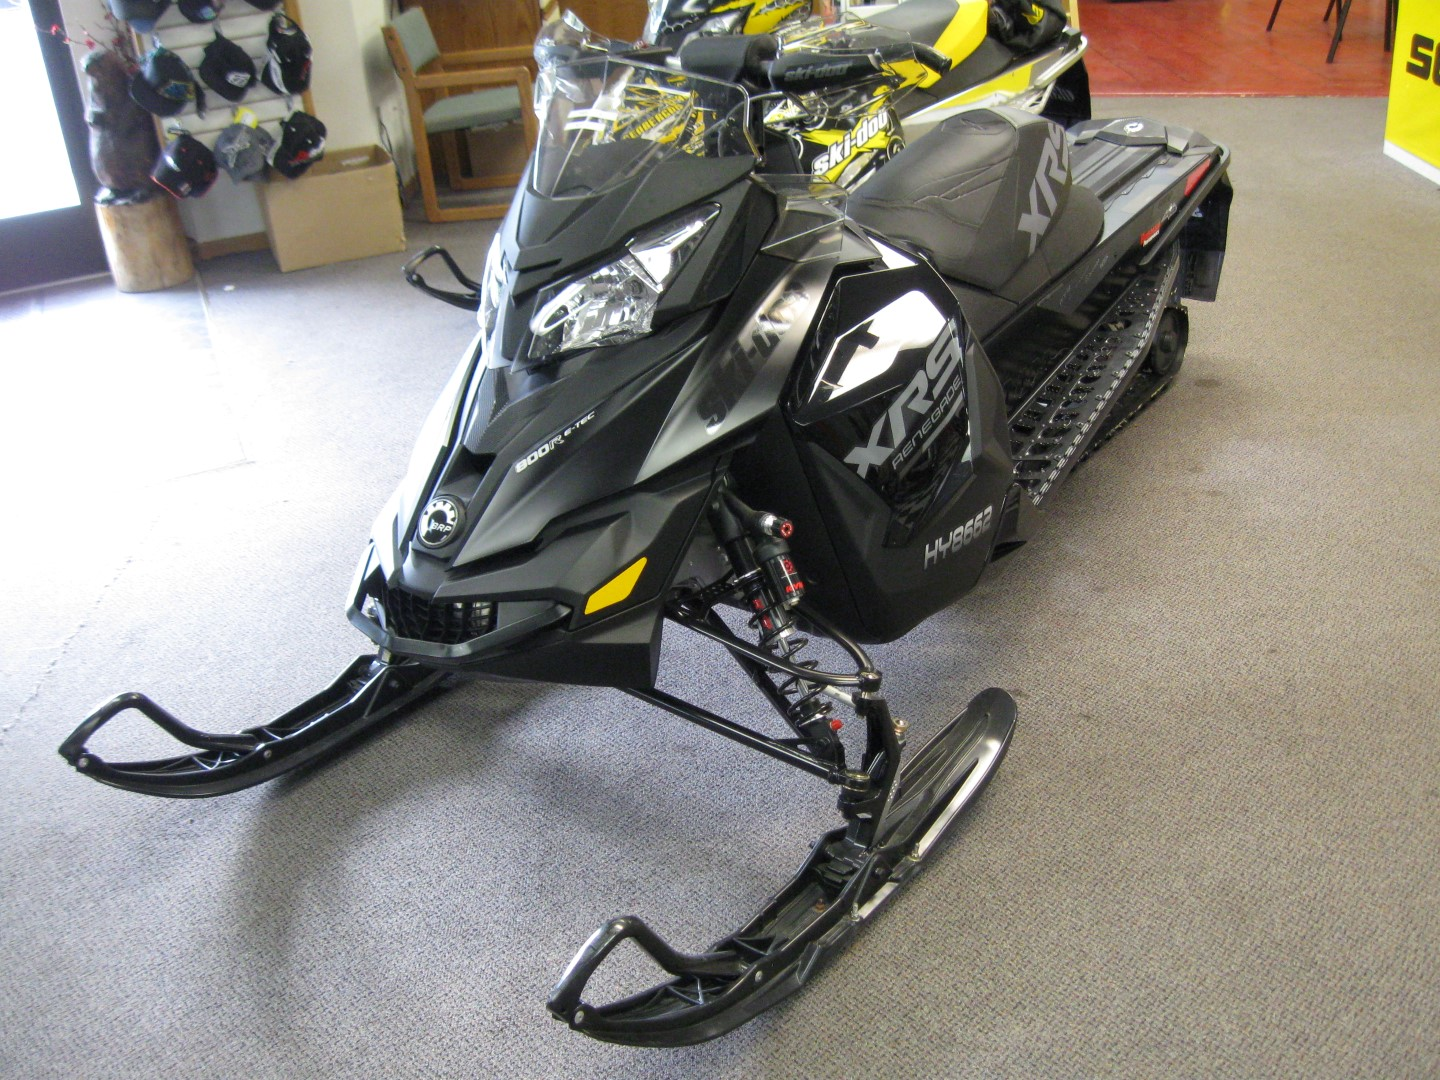 2015 Ski-Doo Renegade 800R E-TEC snowmobile for sale st cloud mn Seaberg Motorsports Crosslake MN Front quarter View